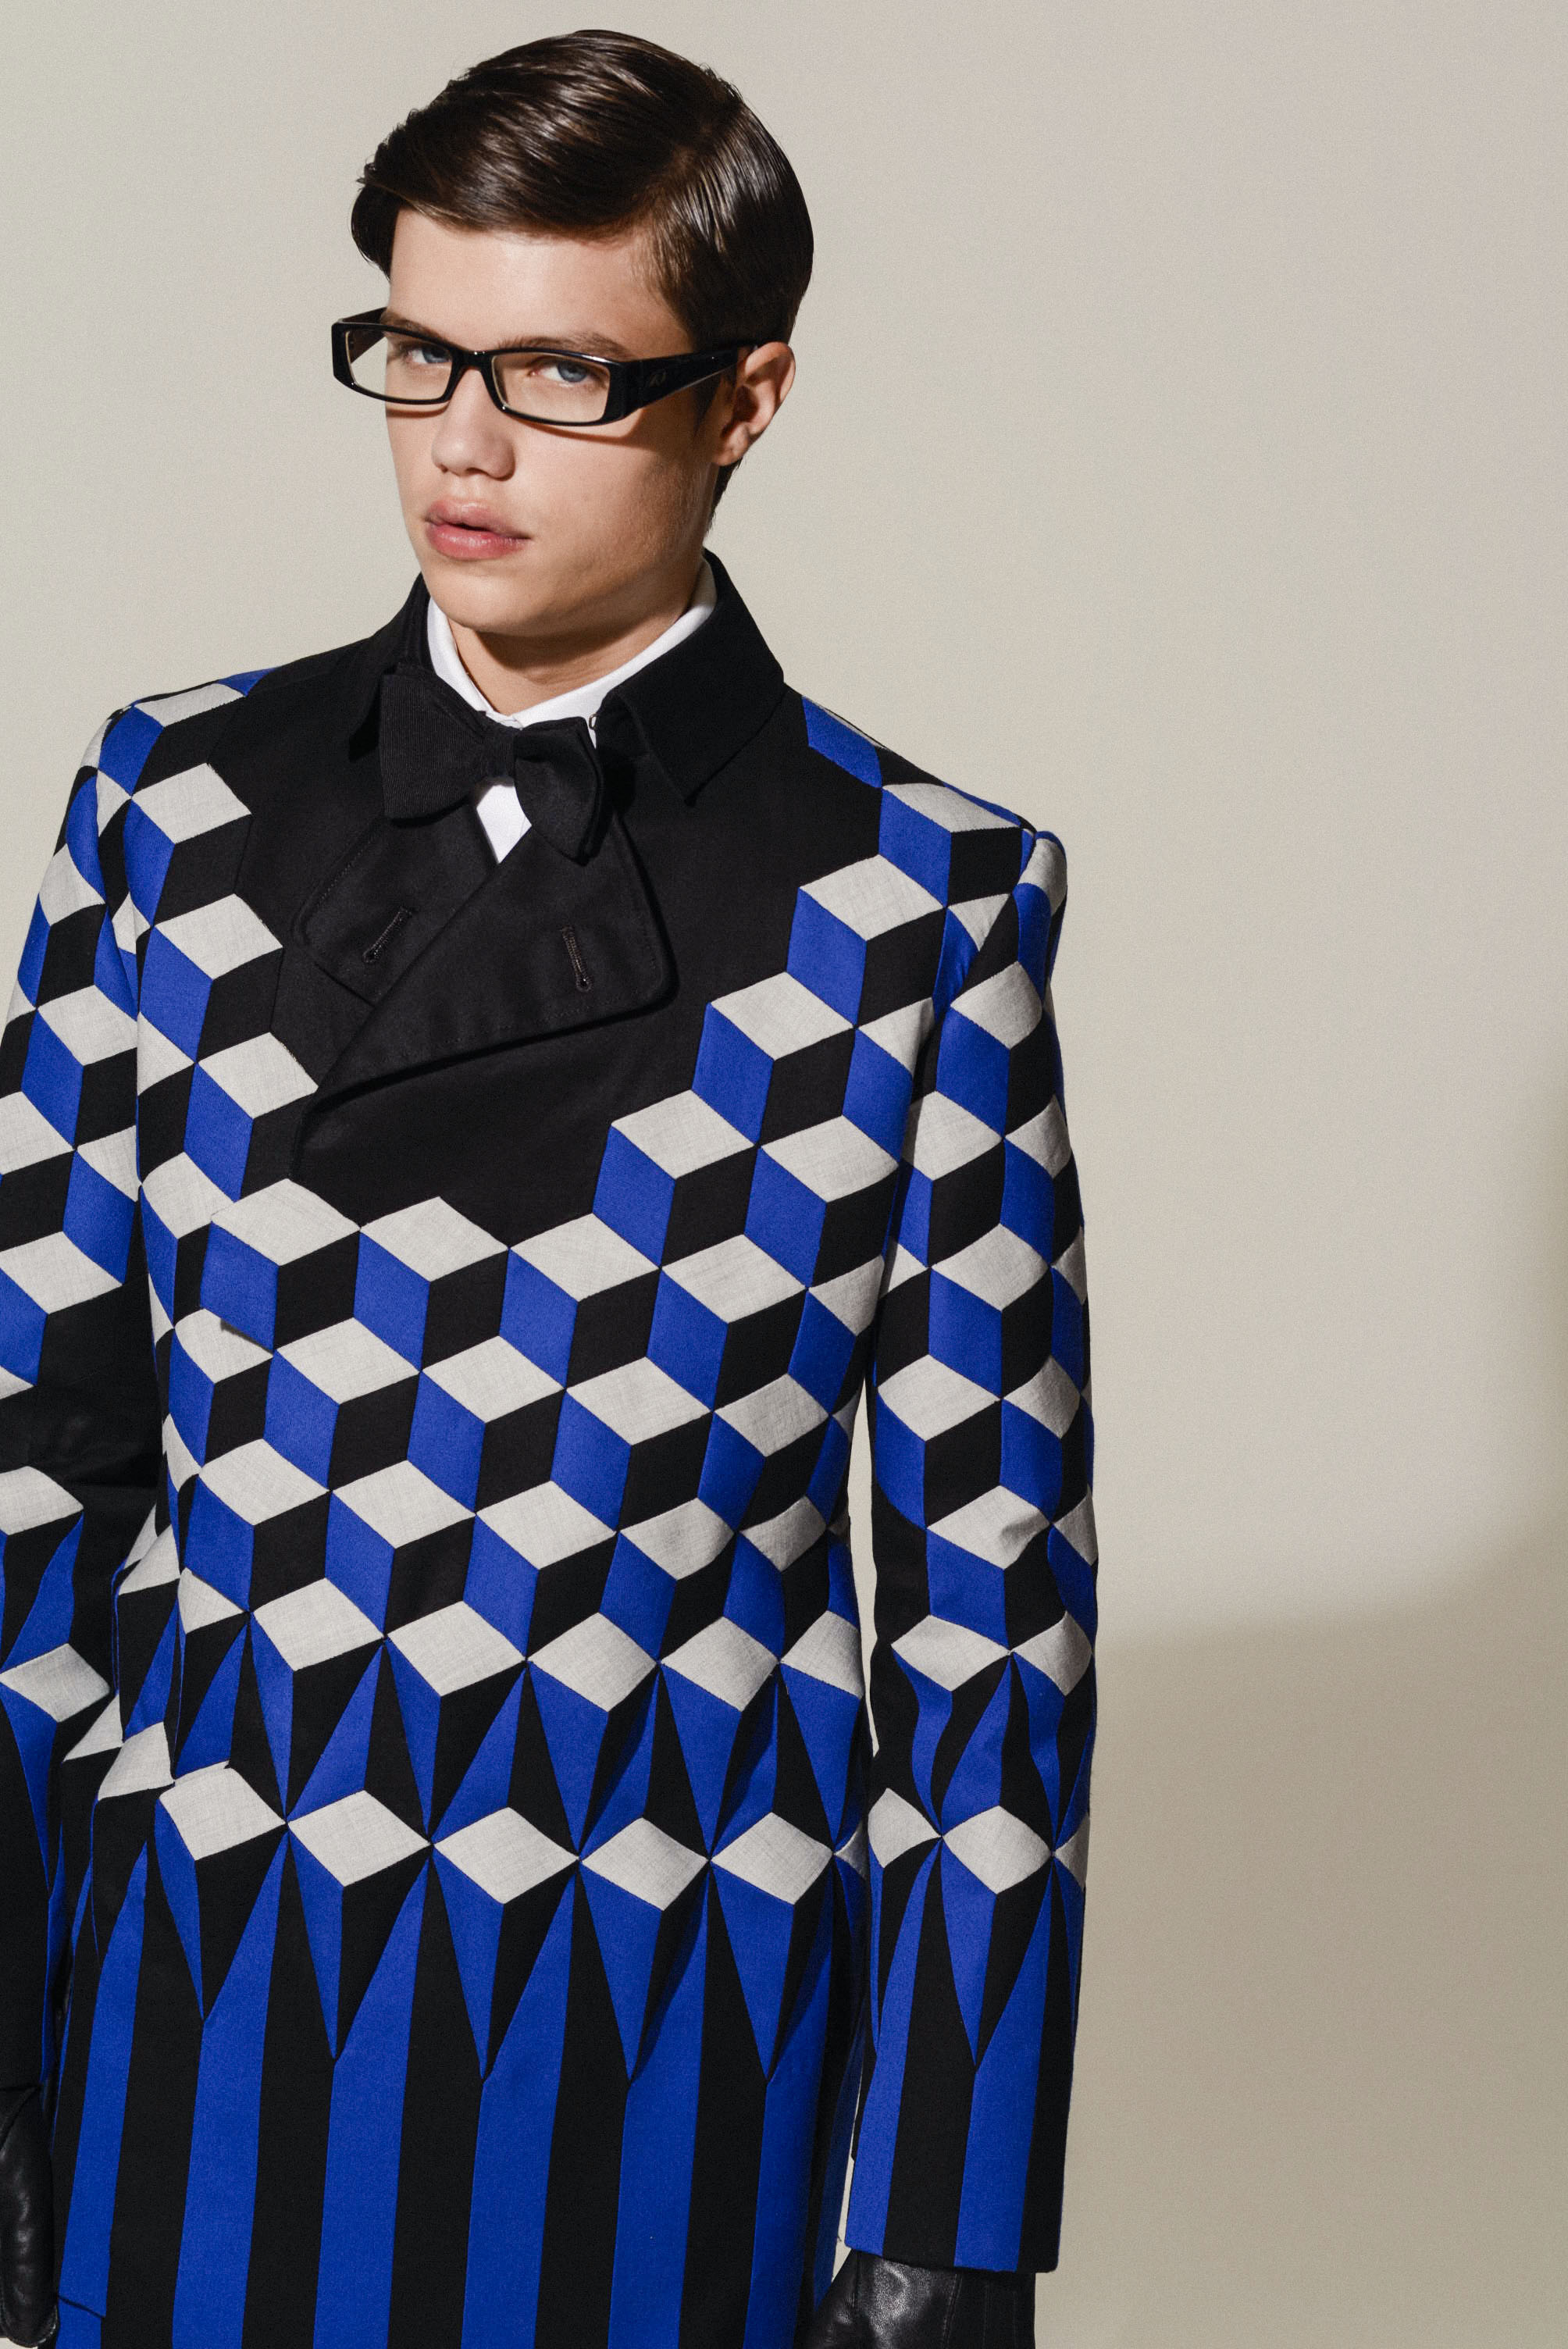 Middle Ages to Modern: Ichiro Suzuki's Menswear Collection